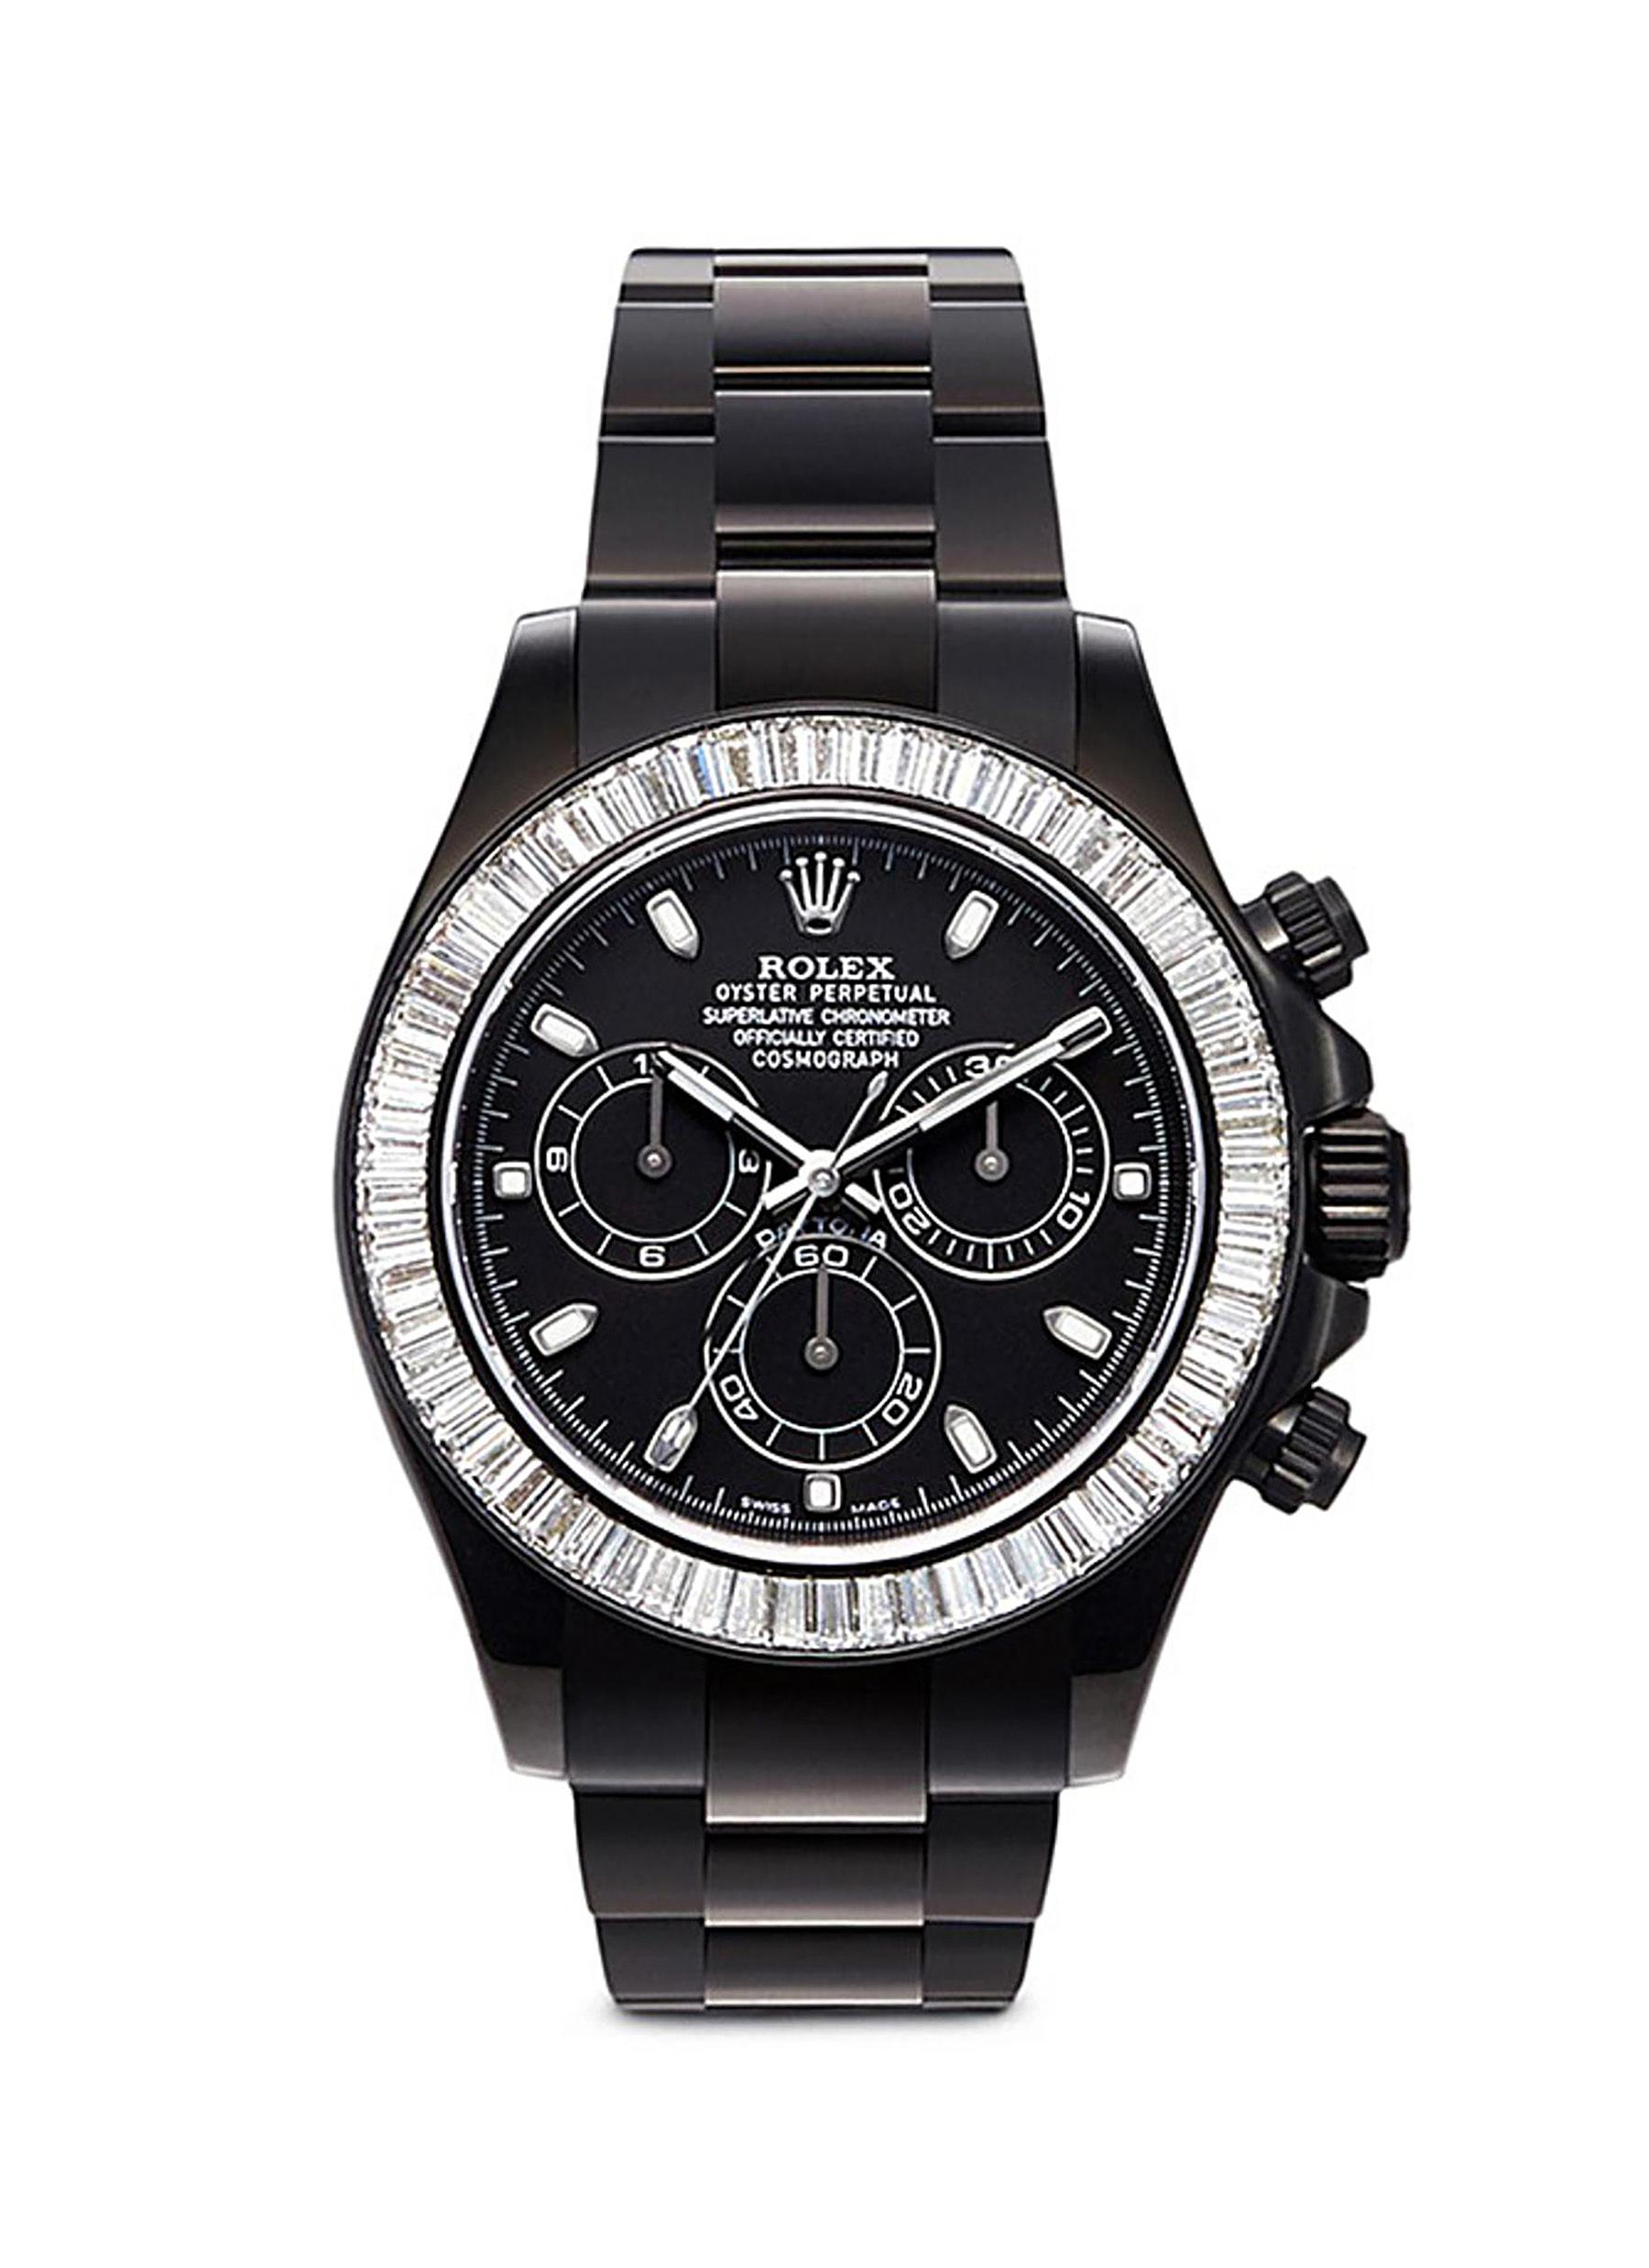 Rolex Cosmograph Daytona oyster perpetual diamond watch by Mad Collections